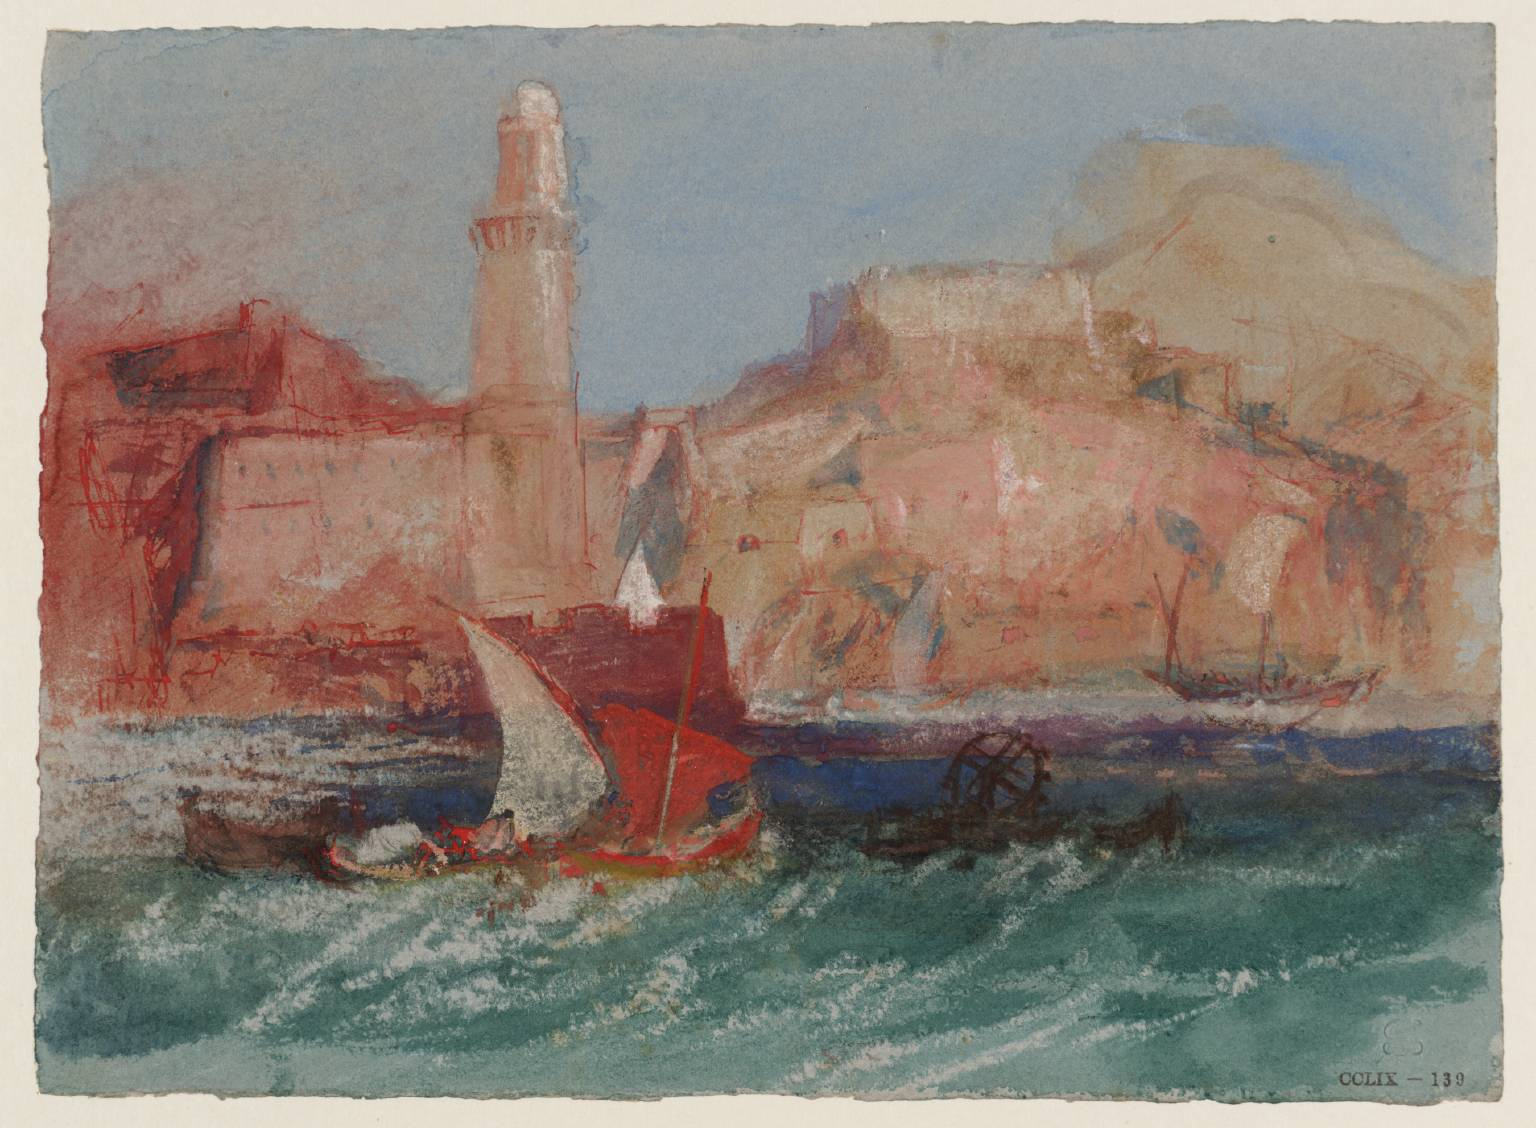 The Lighthouse at Marseilles from the Sea circa 1828 Joseph Mallord William Turner 1775-1851 Accepted by the nation as part of the Turner Bequest 1856 http://www.tate.org.uk/art/work/D24704